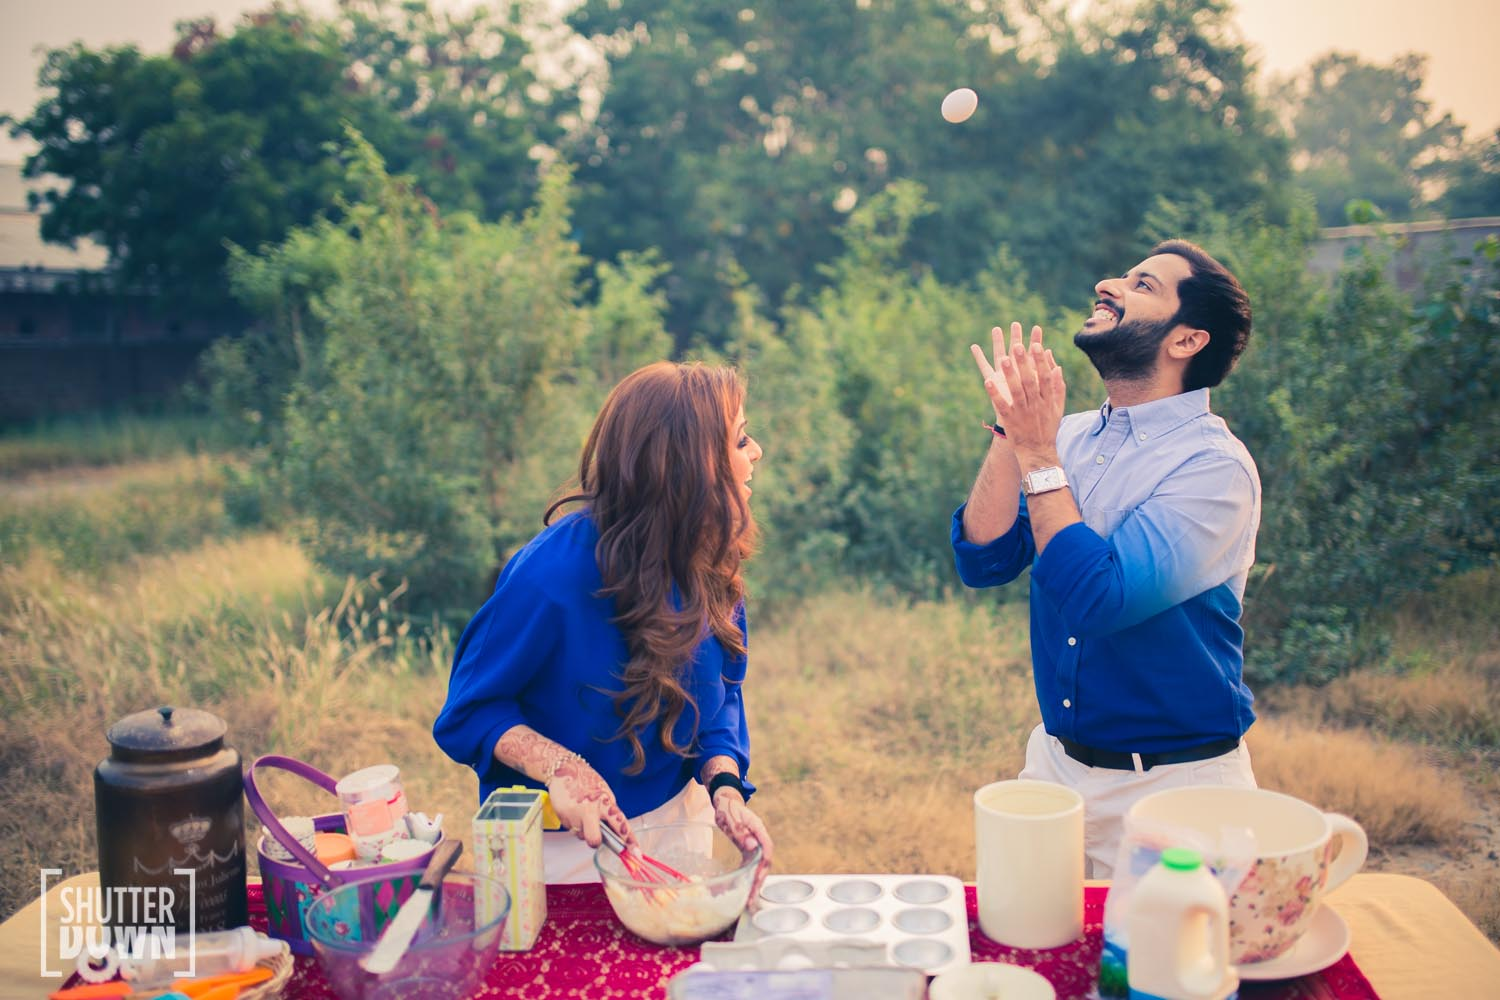 baking themed prewedding photoshoot